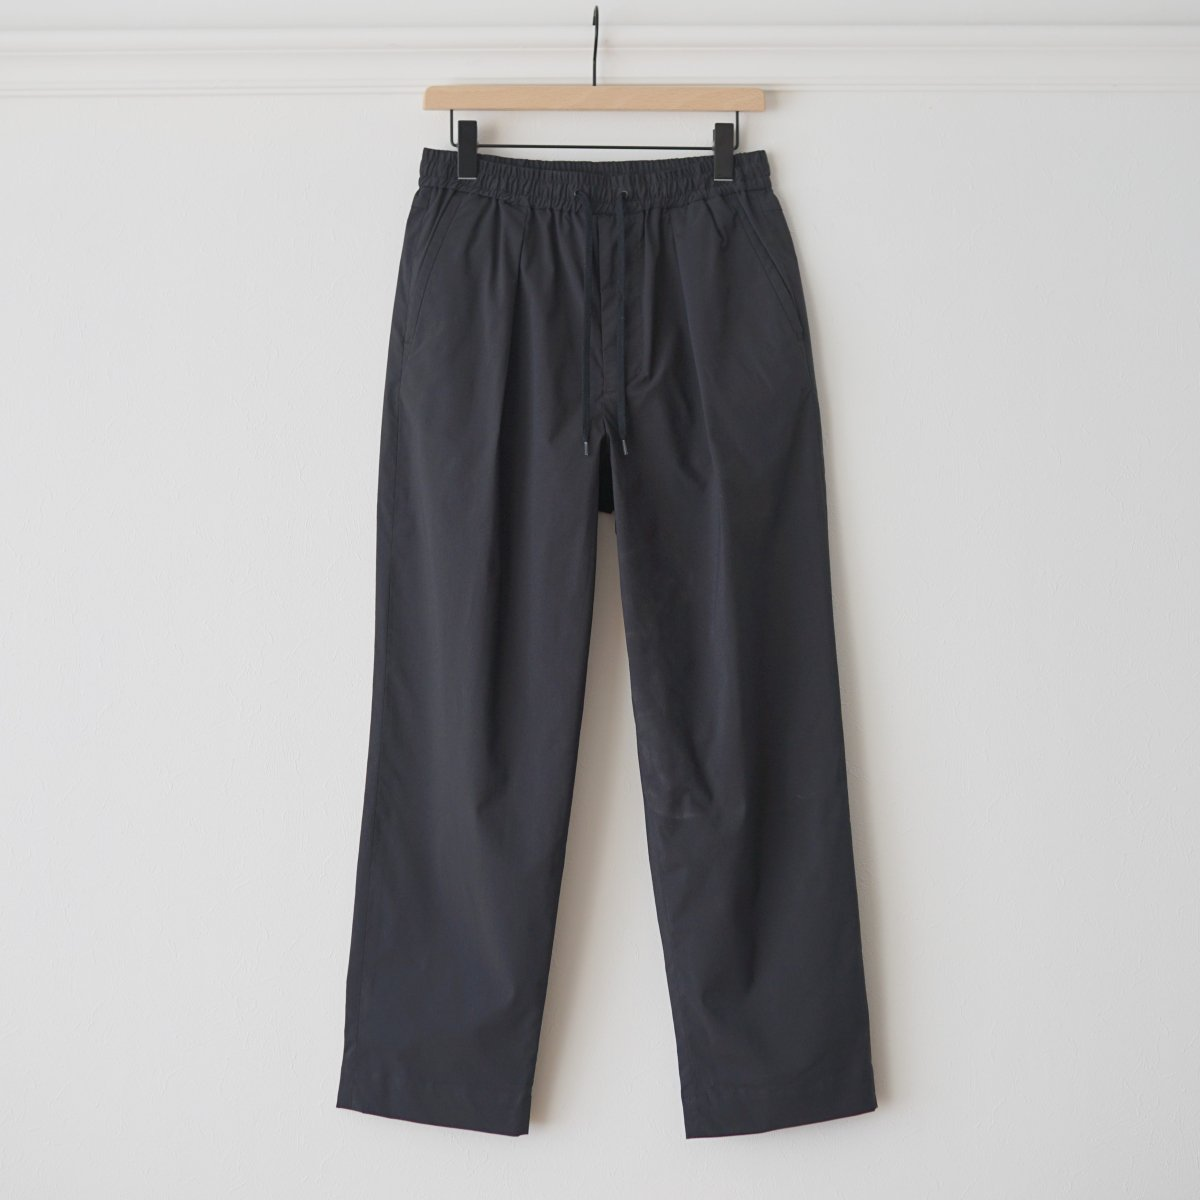 【AVONTADE アボンタージ】COMFORT WIDE EASY TROUSERS / cool max / - BLACK